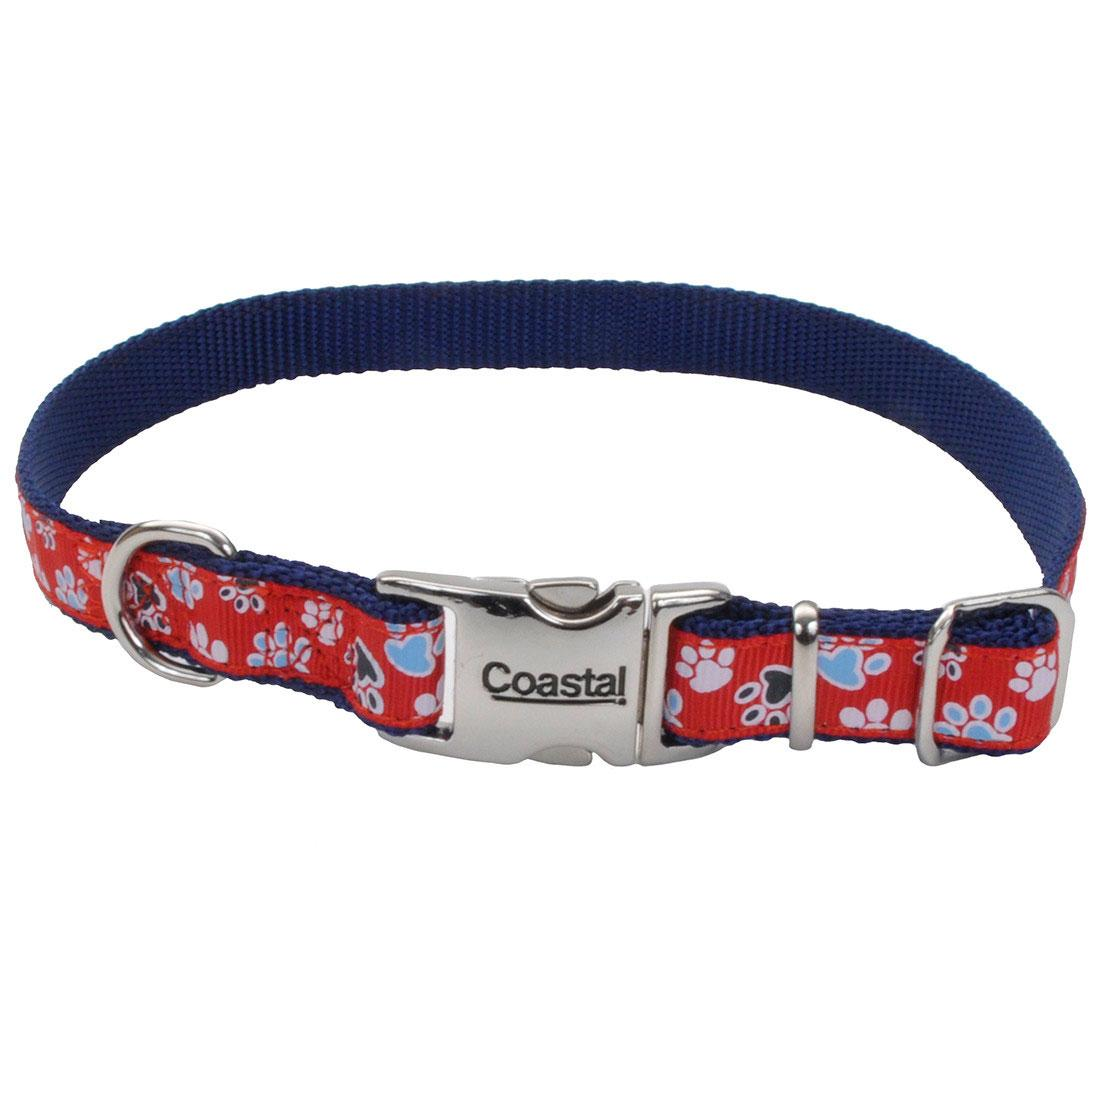 Ribbon Adjustable Collar with Metal Buckle for Dogs, Red with Paws Image